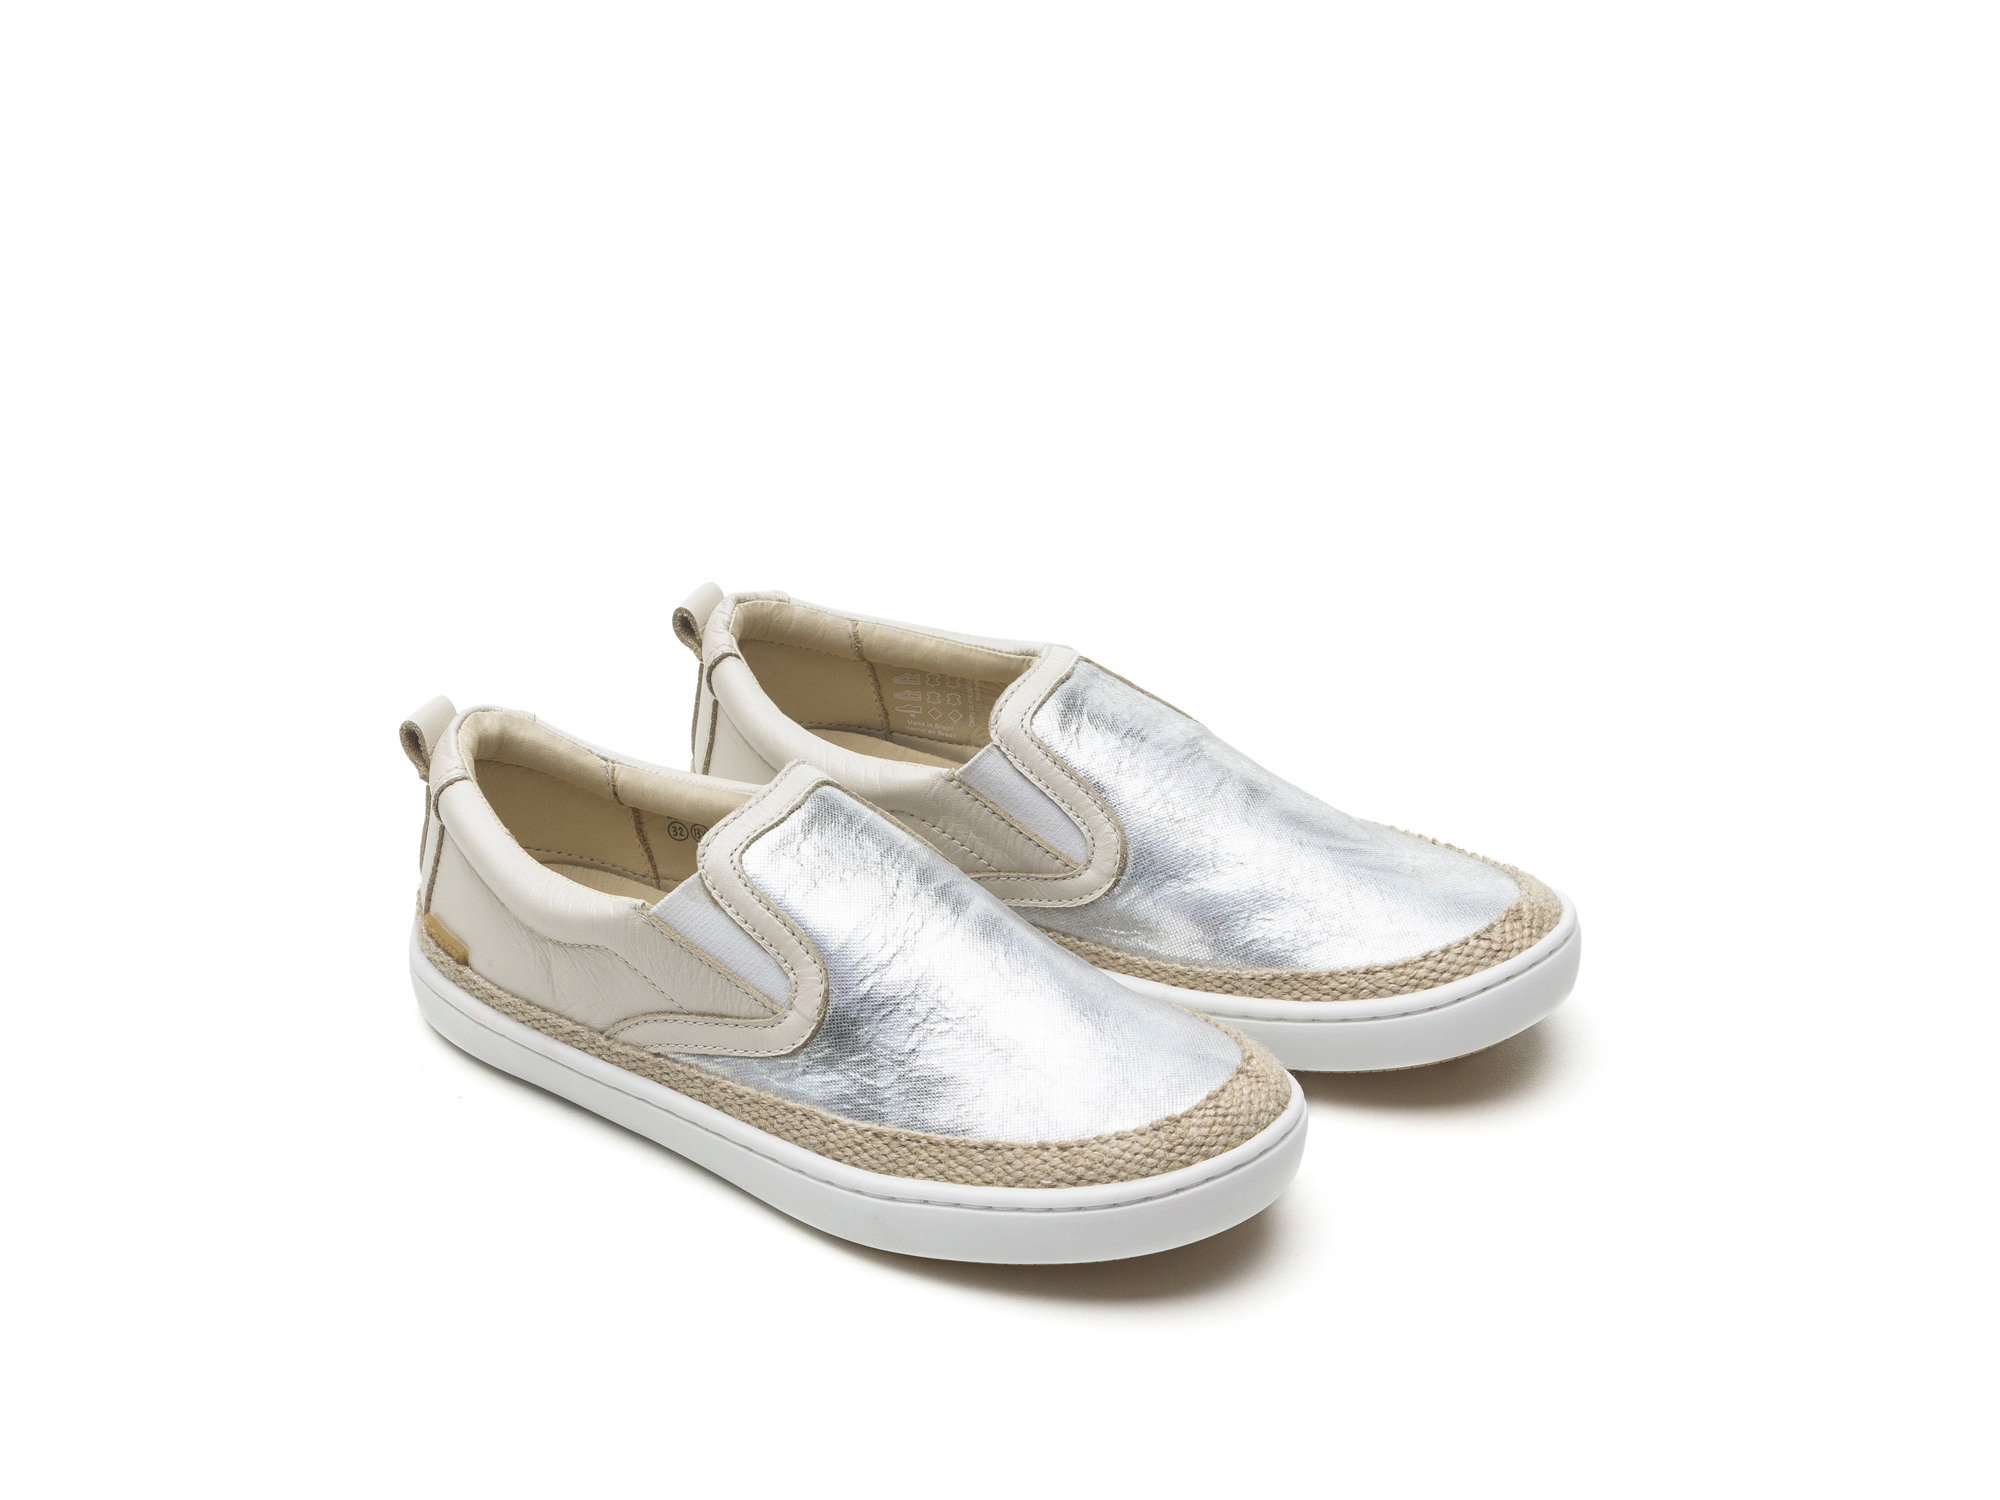 Tênis Straw Sea Sparkle/ Antique White Junior 4 à 8 anos - 0